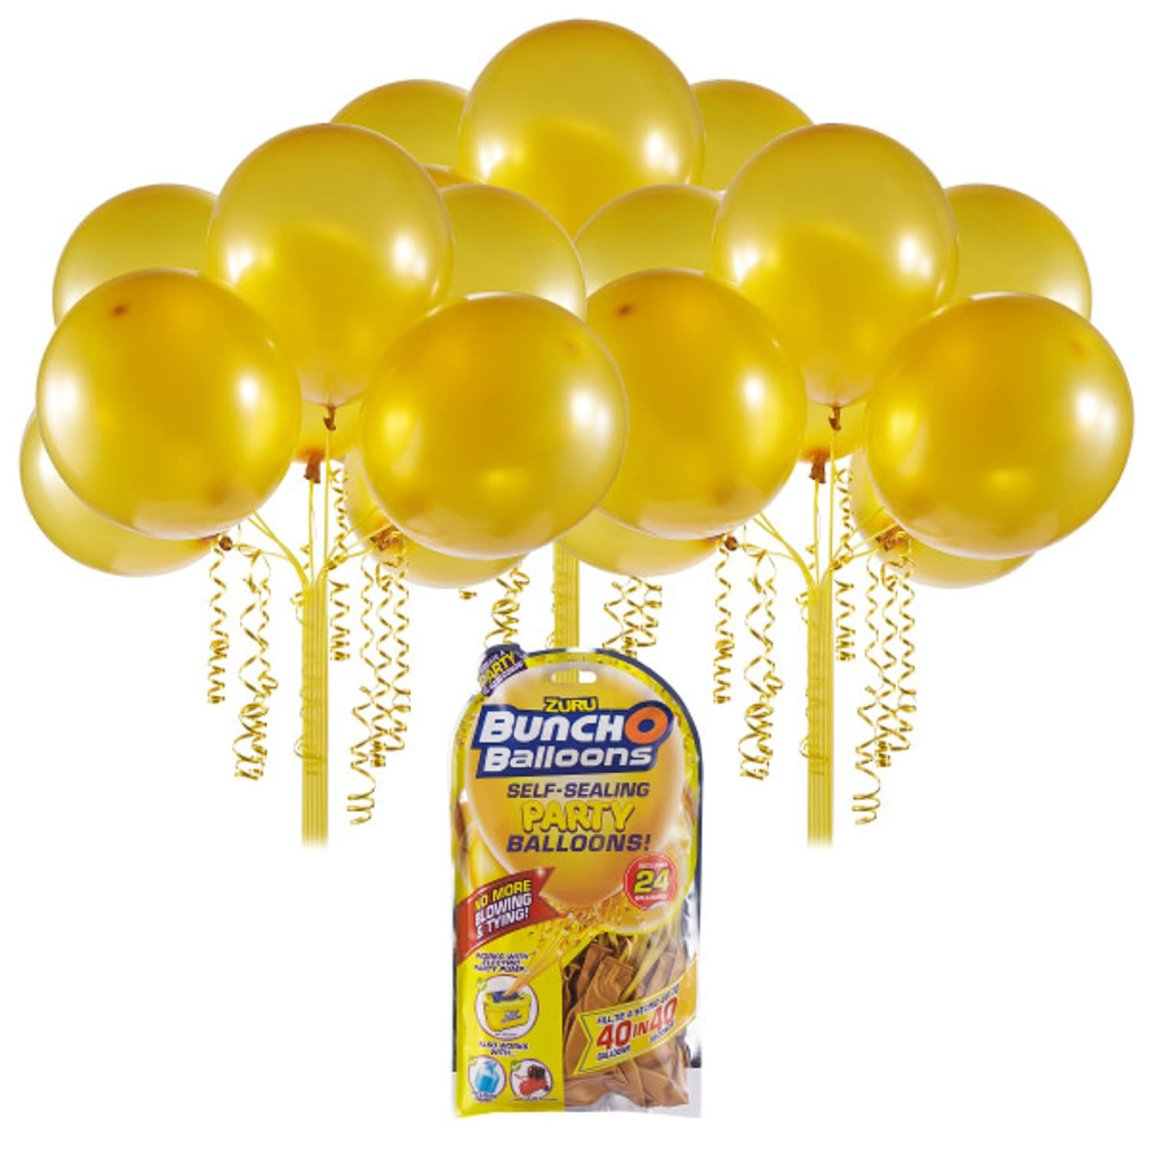 Zuru Self Sealing Party Balloons 24pk - Gold